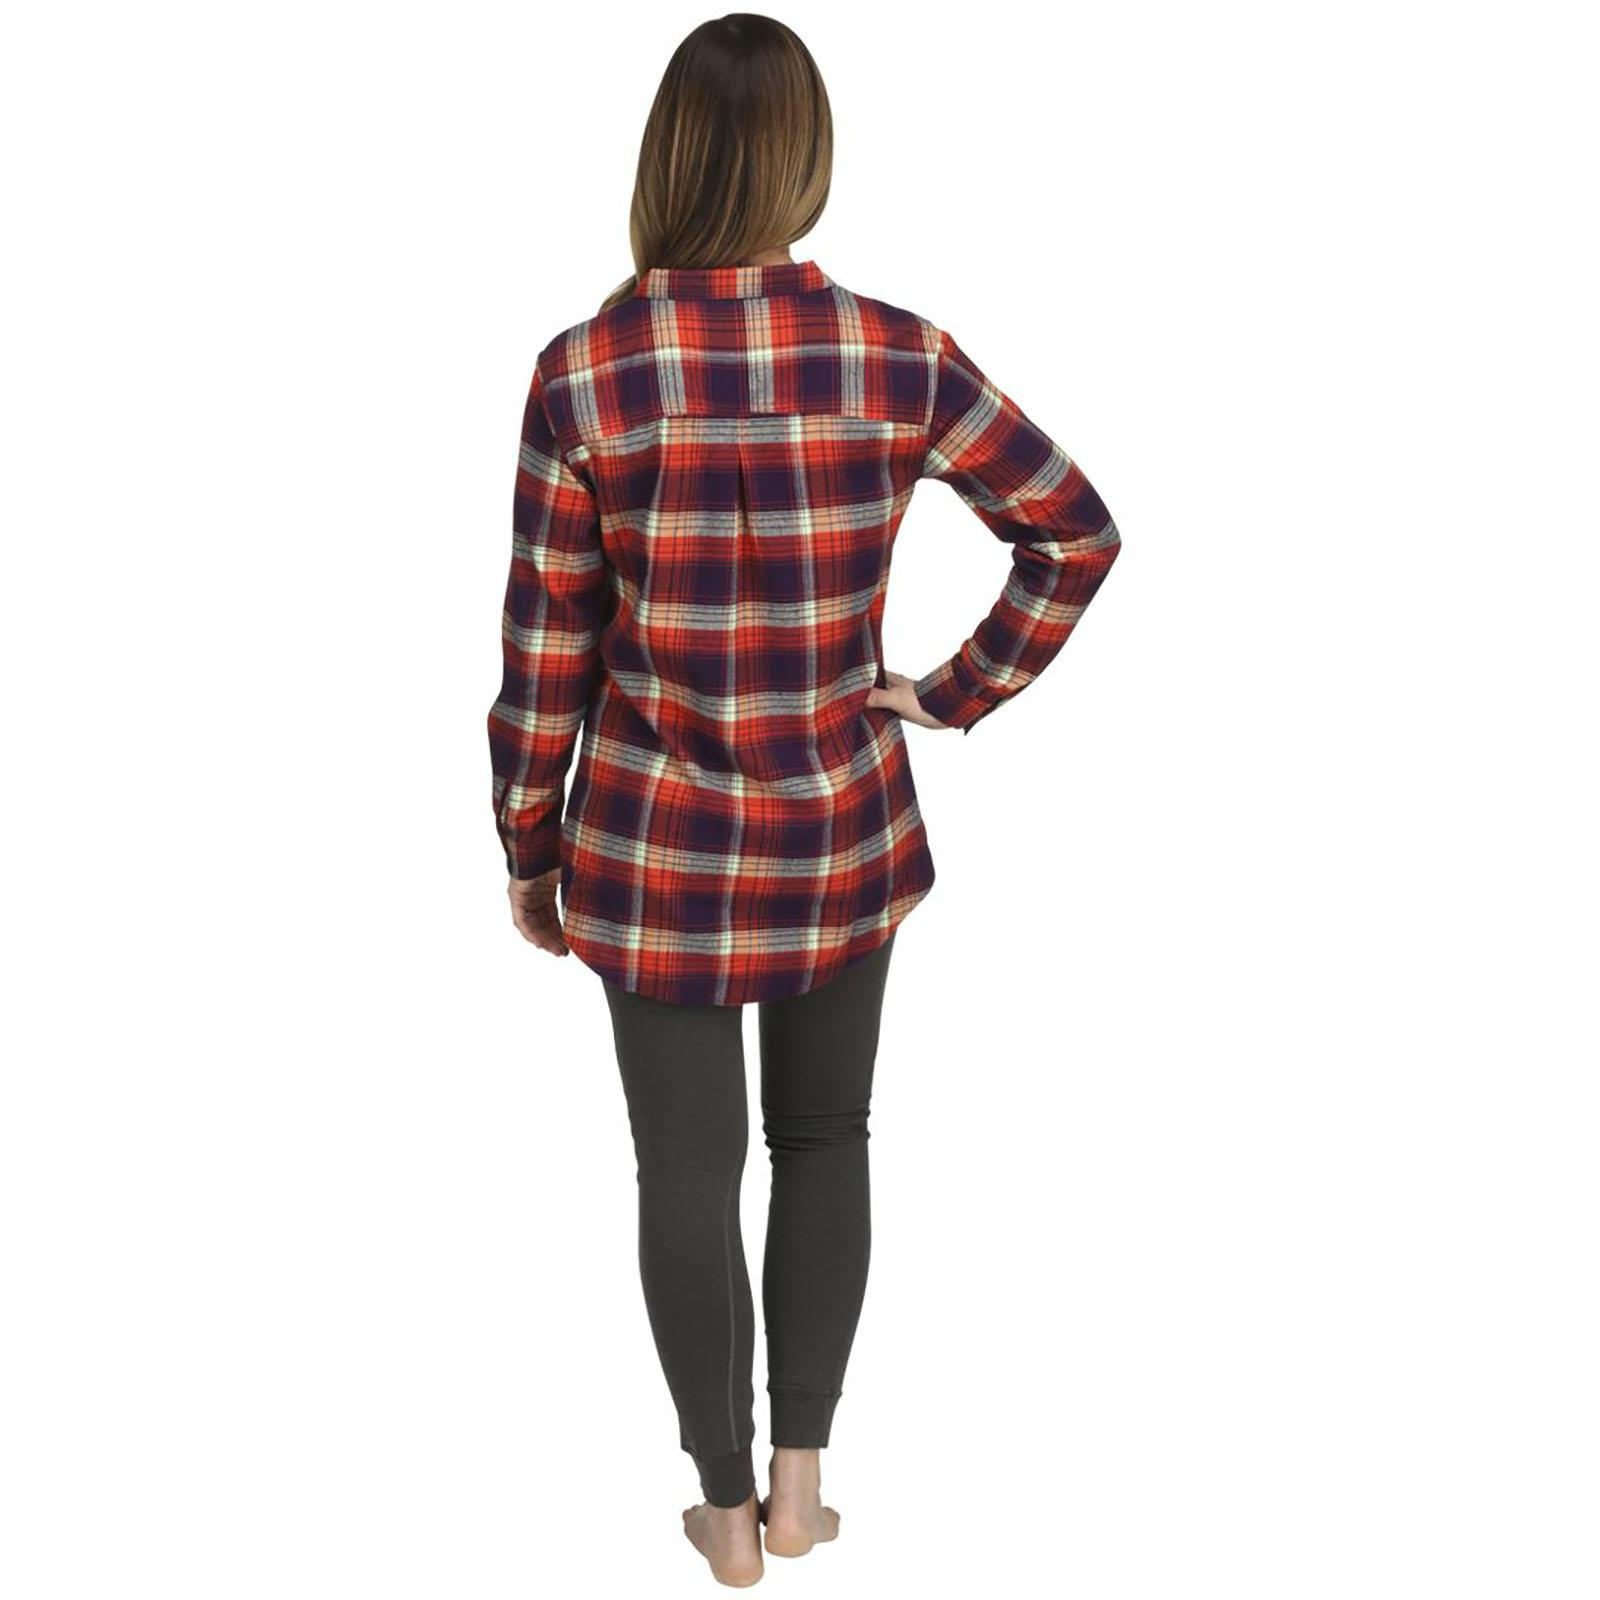 Back View - Spiced Coral Plaid